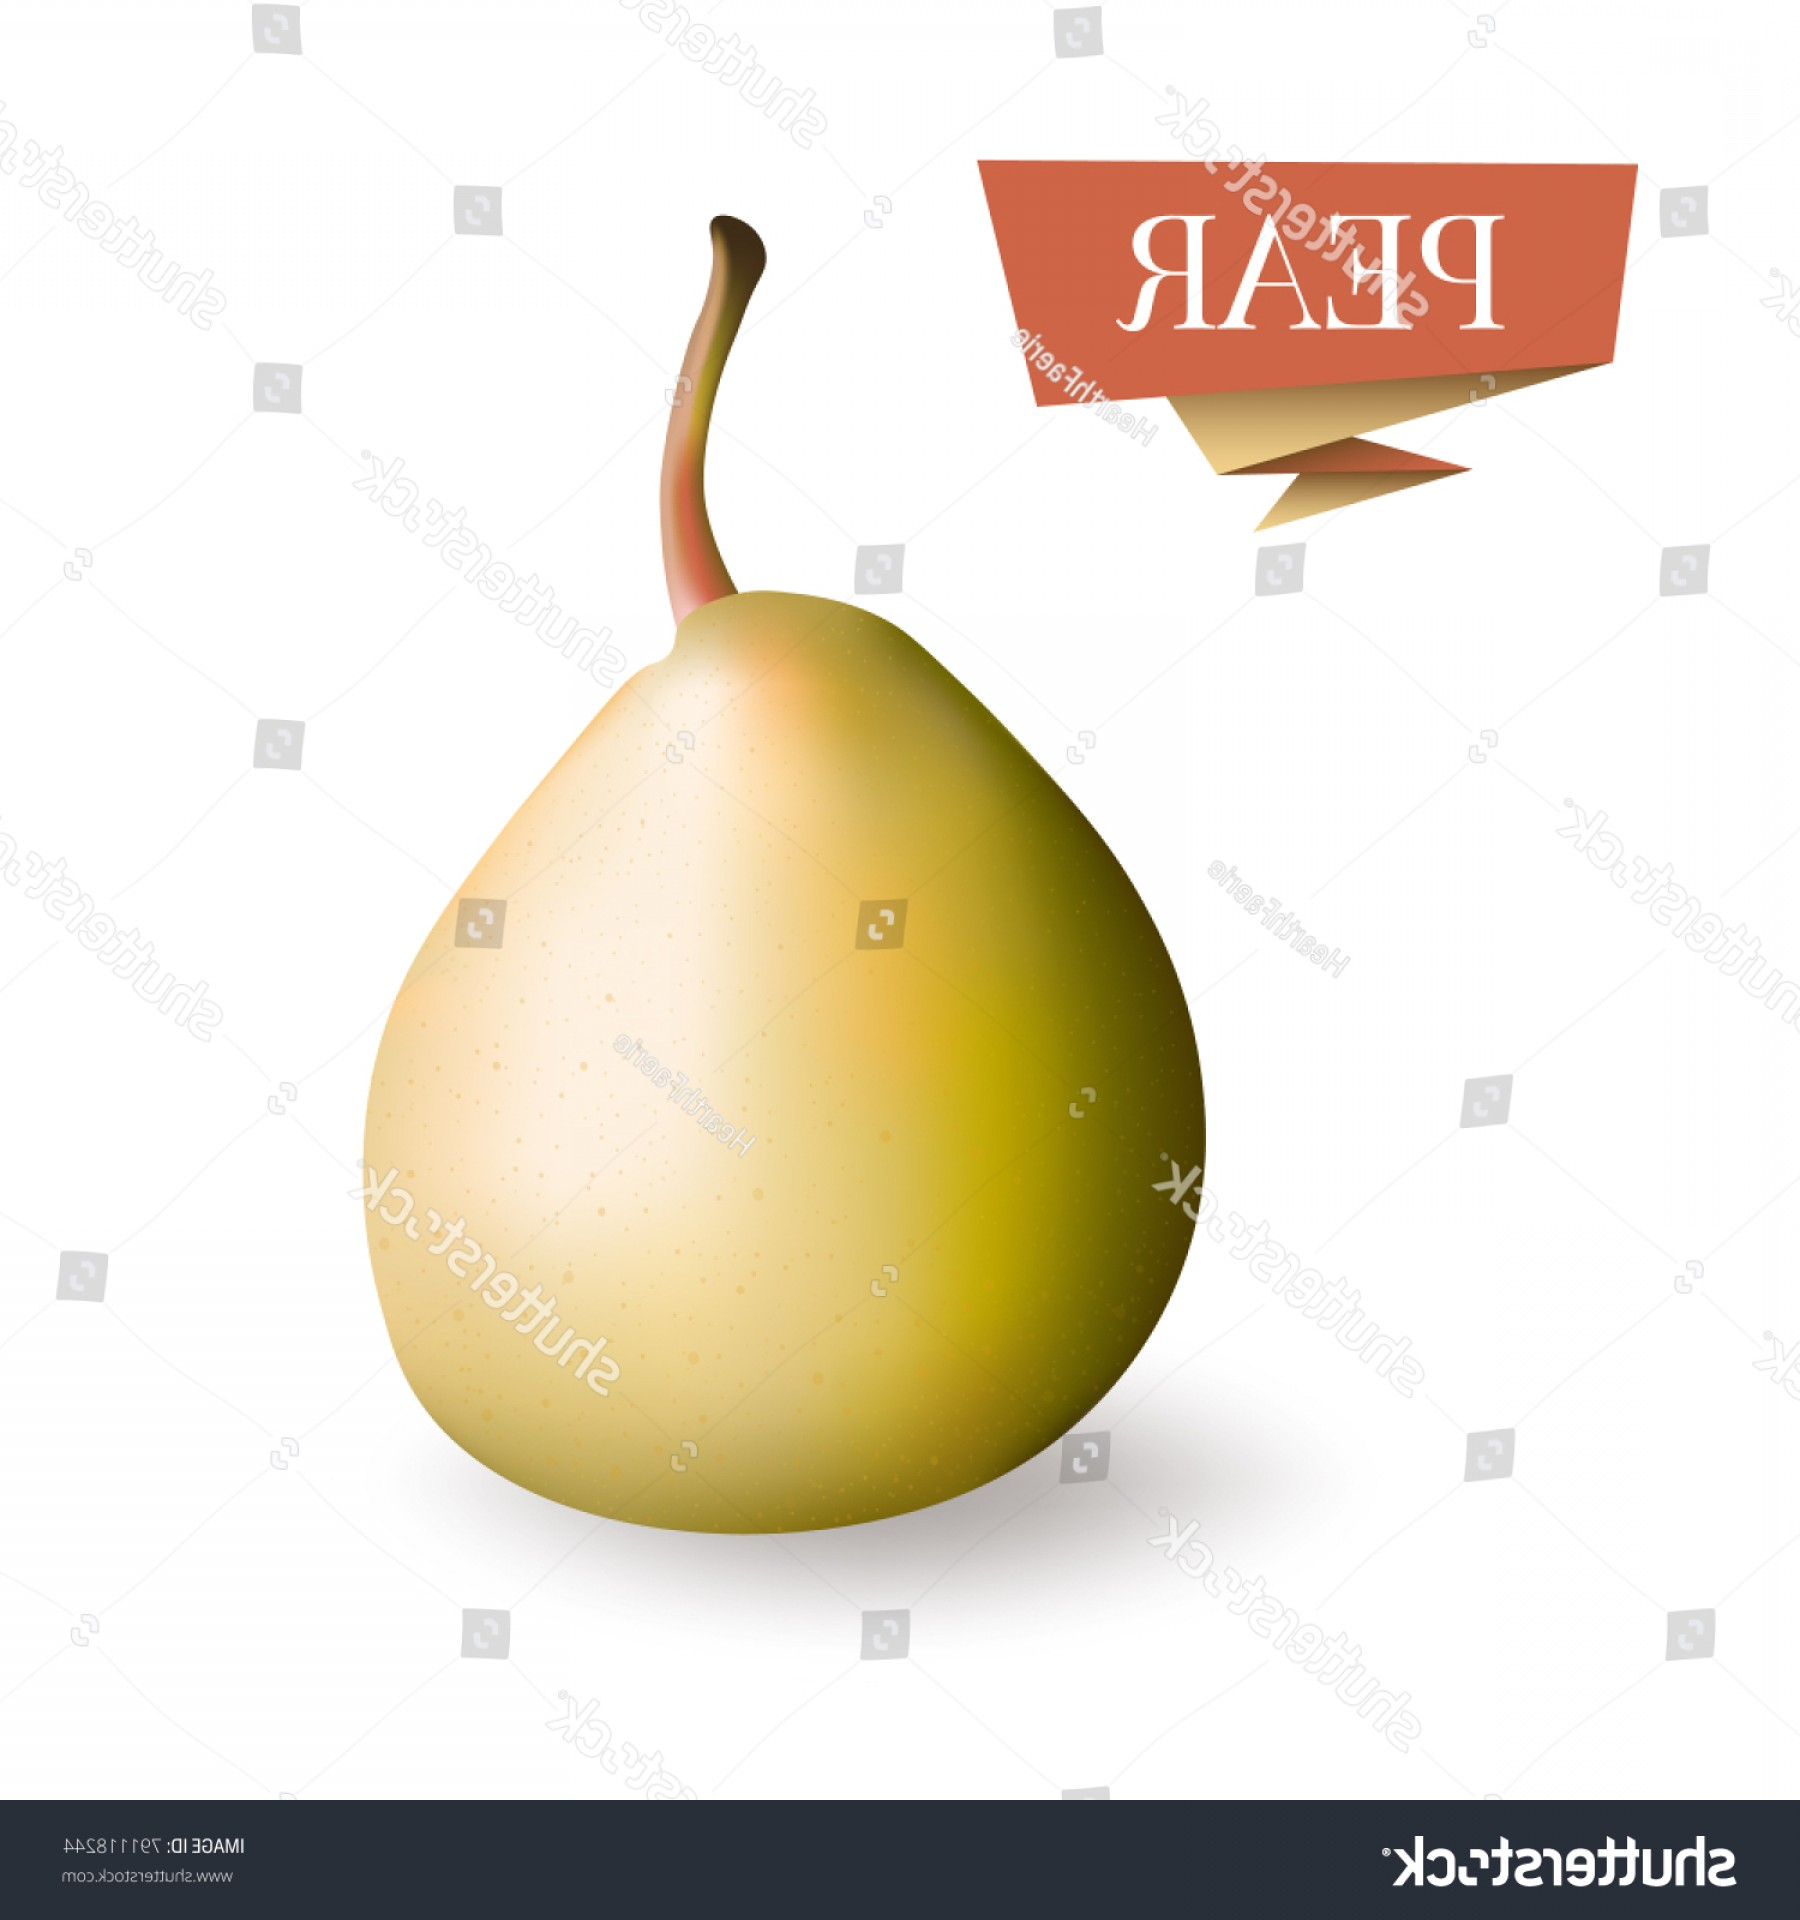 Pear Vector Shutterstock: Isolated Picture Pear Fruit D Vector